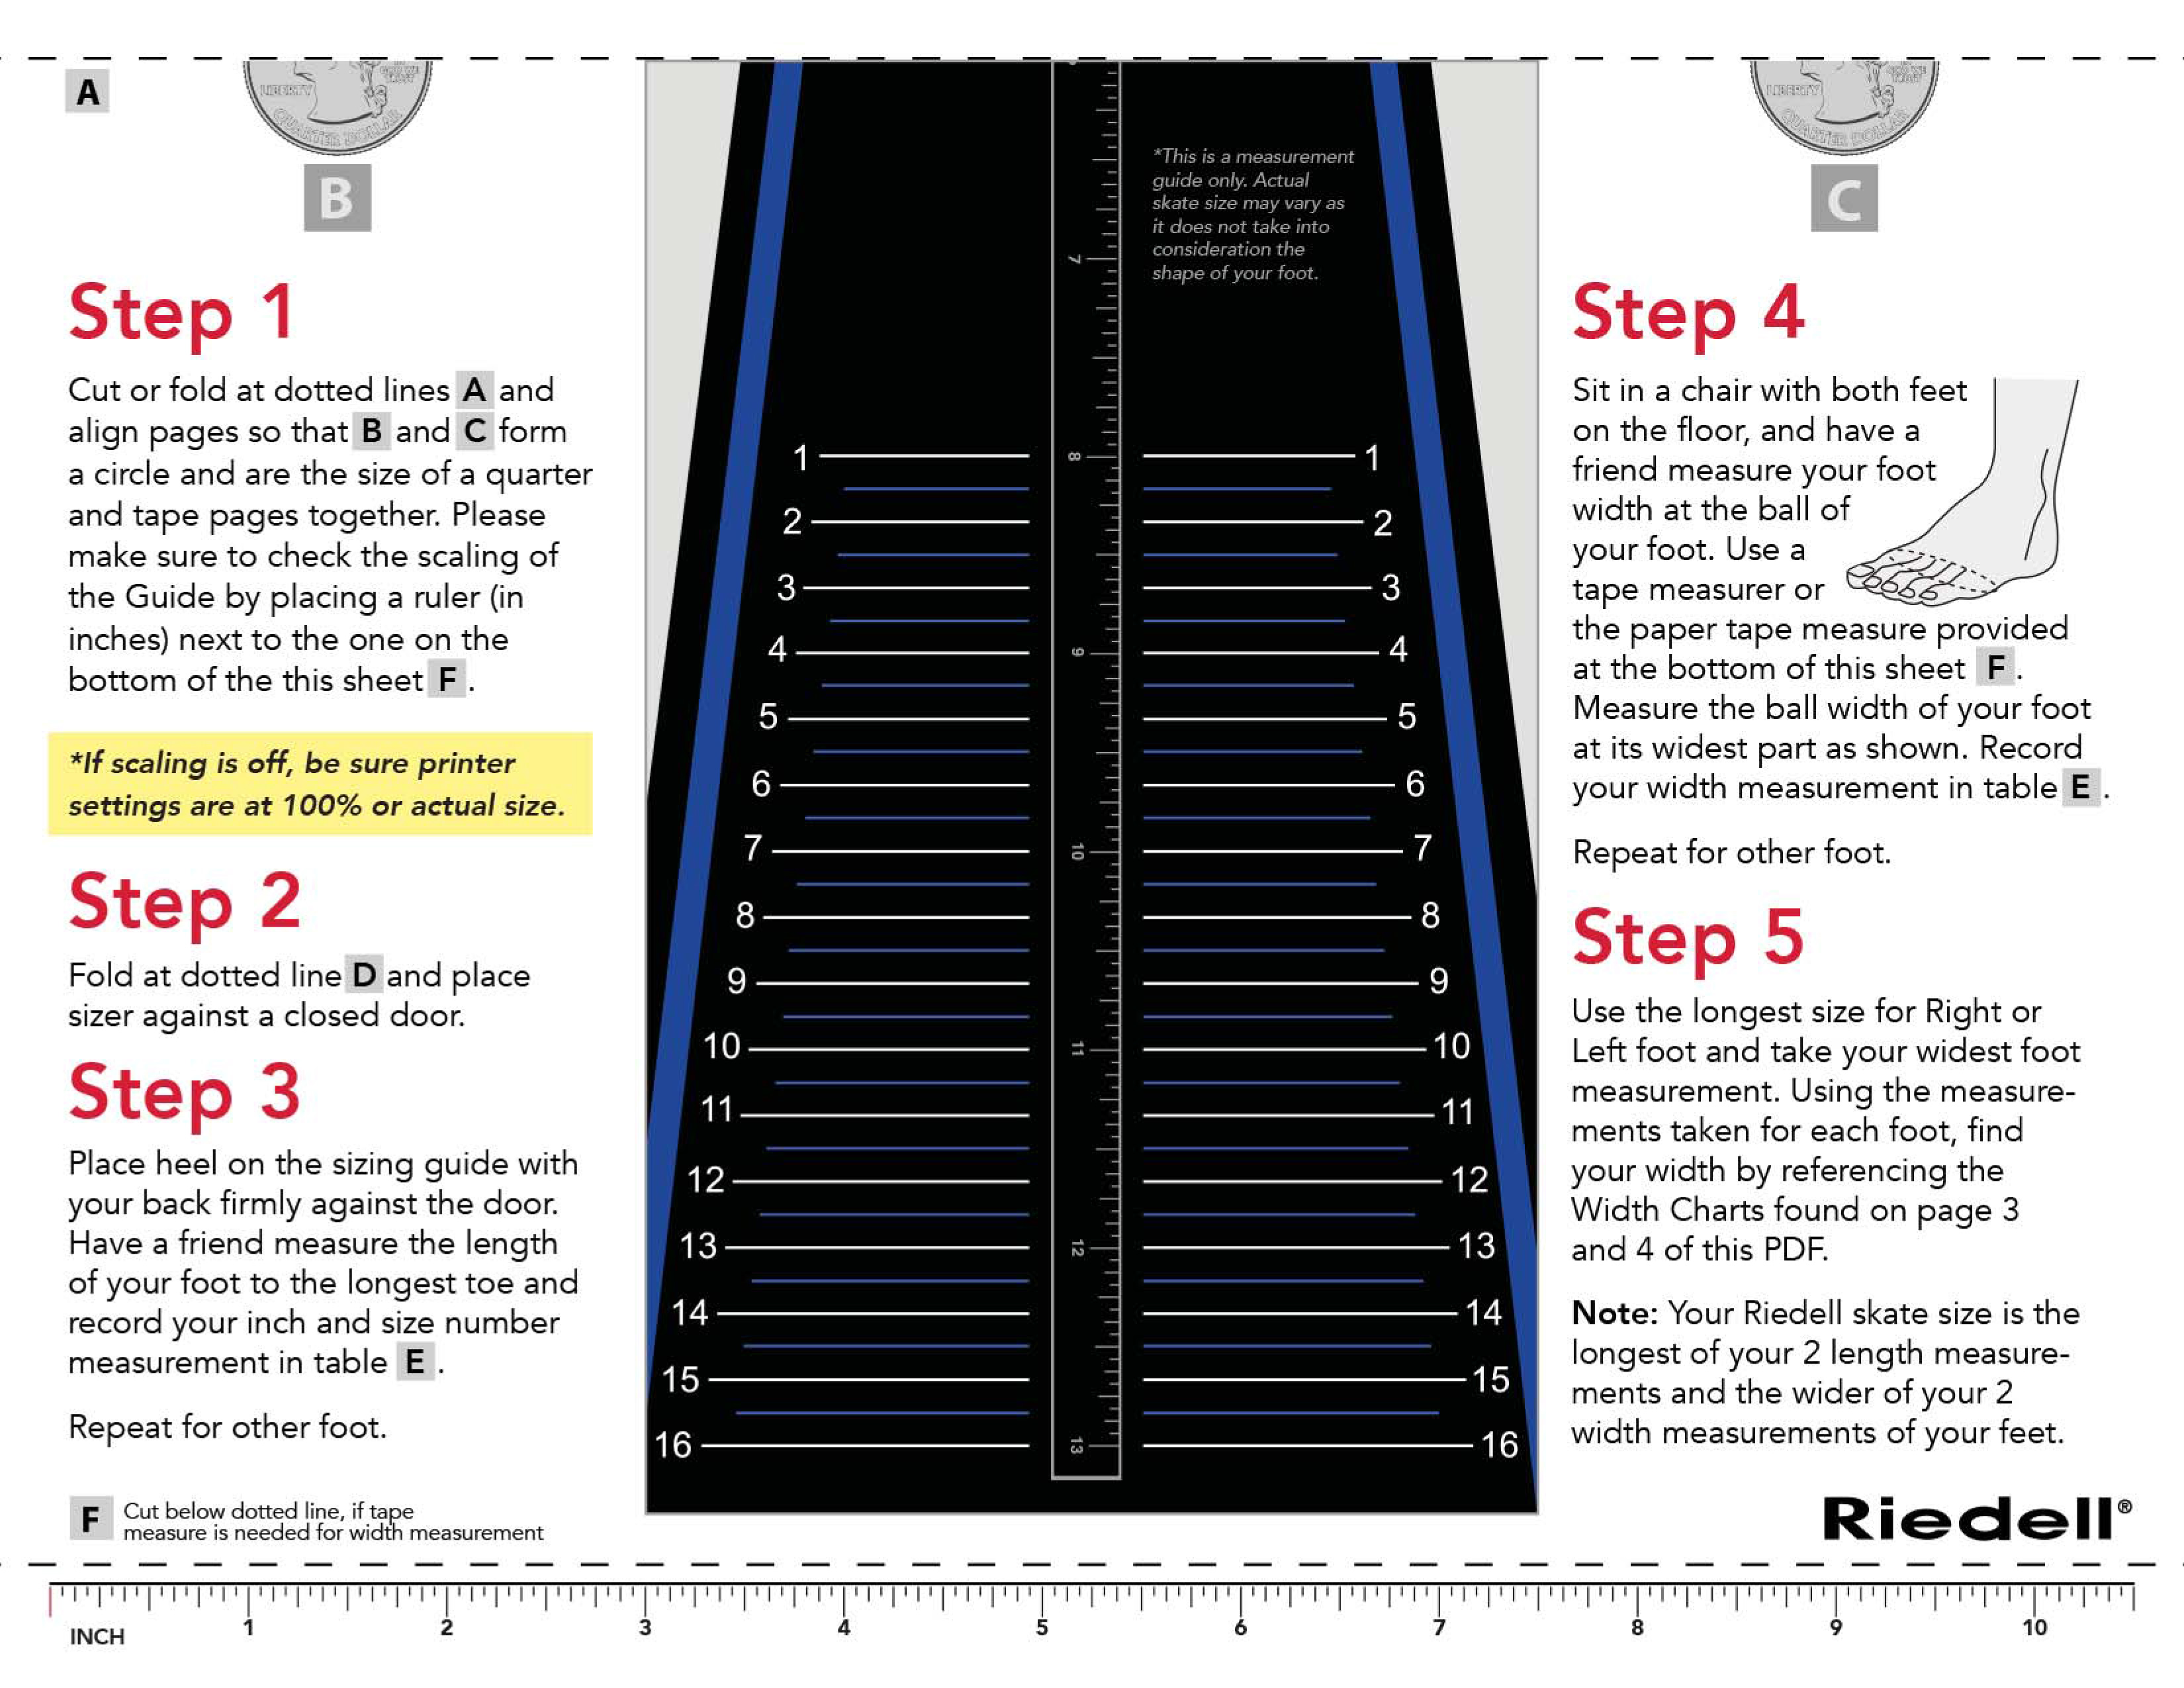 riedell-roller-sizing-guide-page-2.jpg